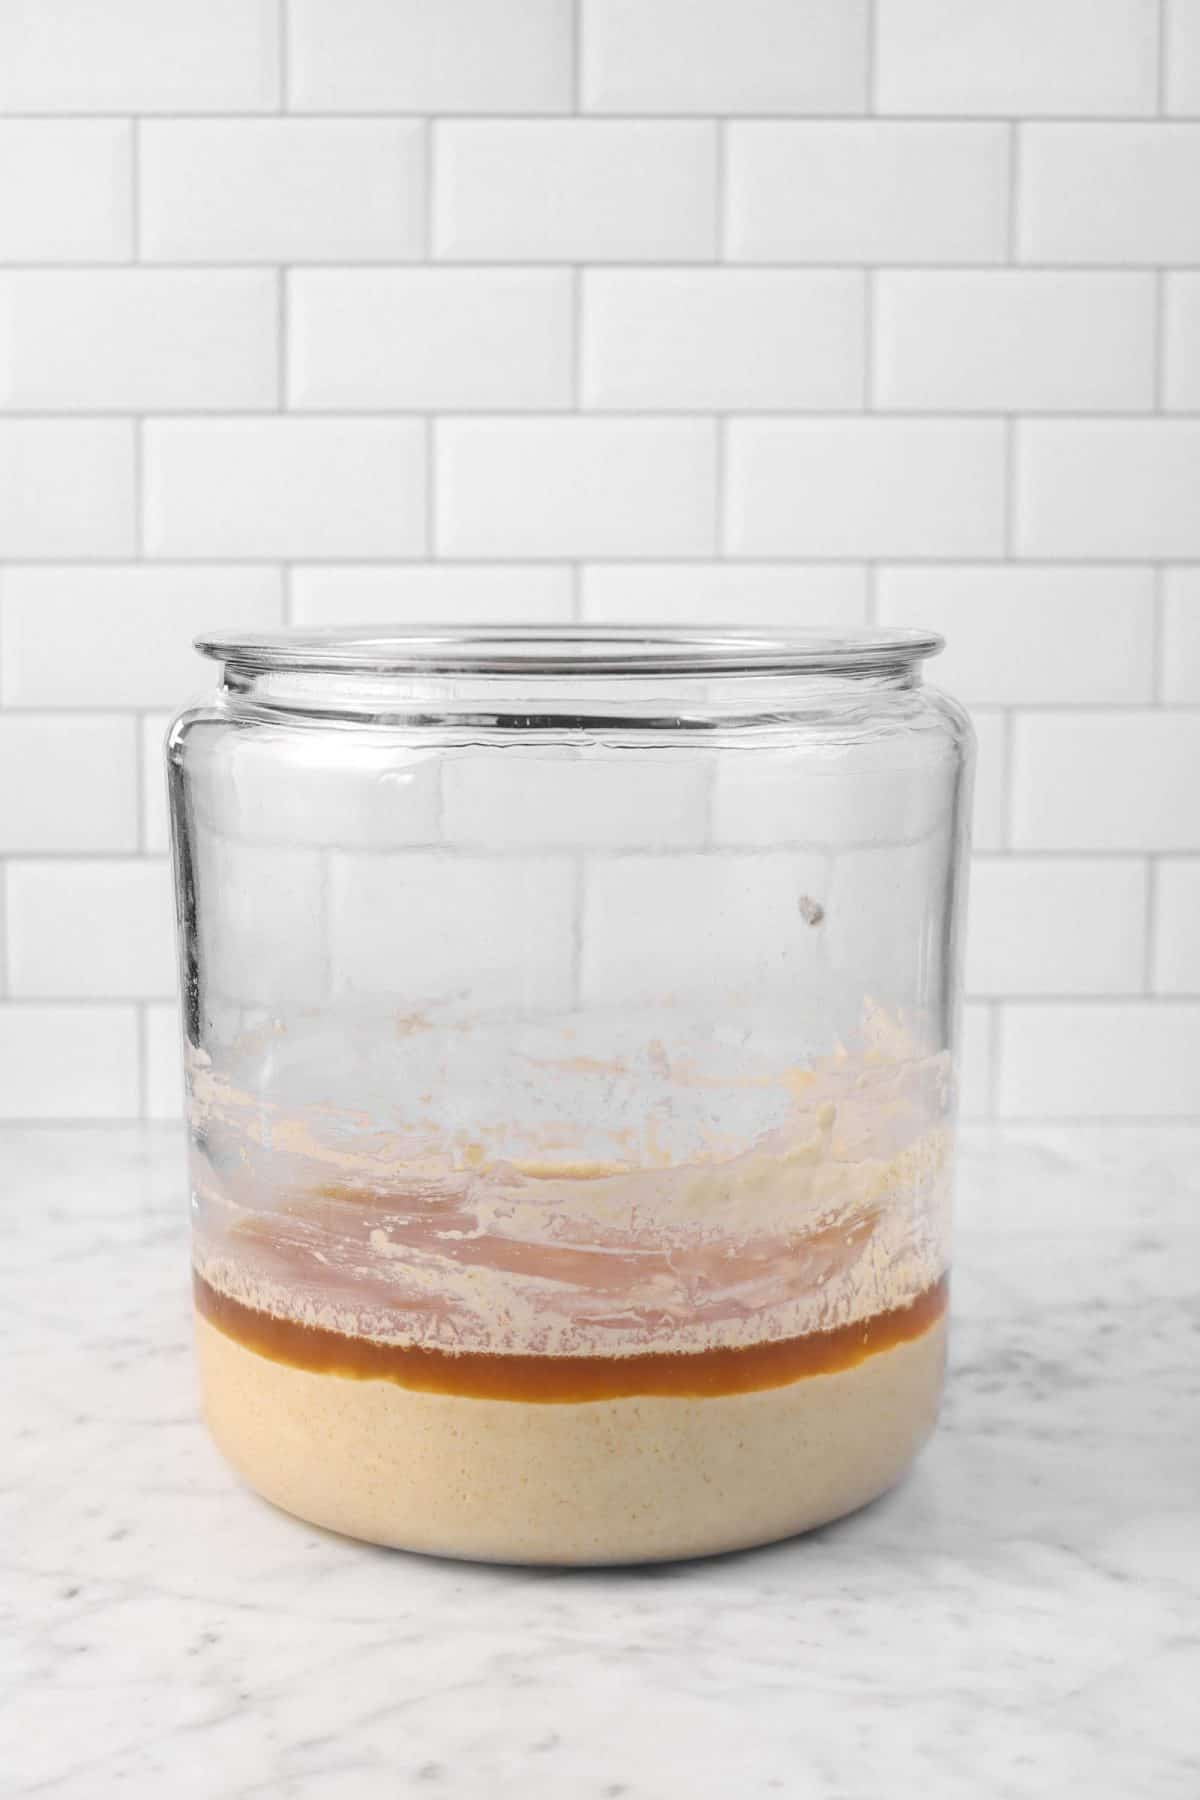 sourdough starter in a glass jar on a marble counter